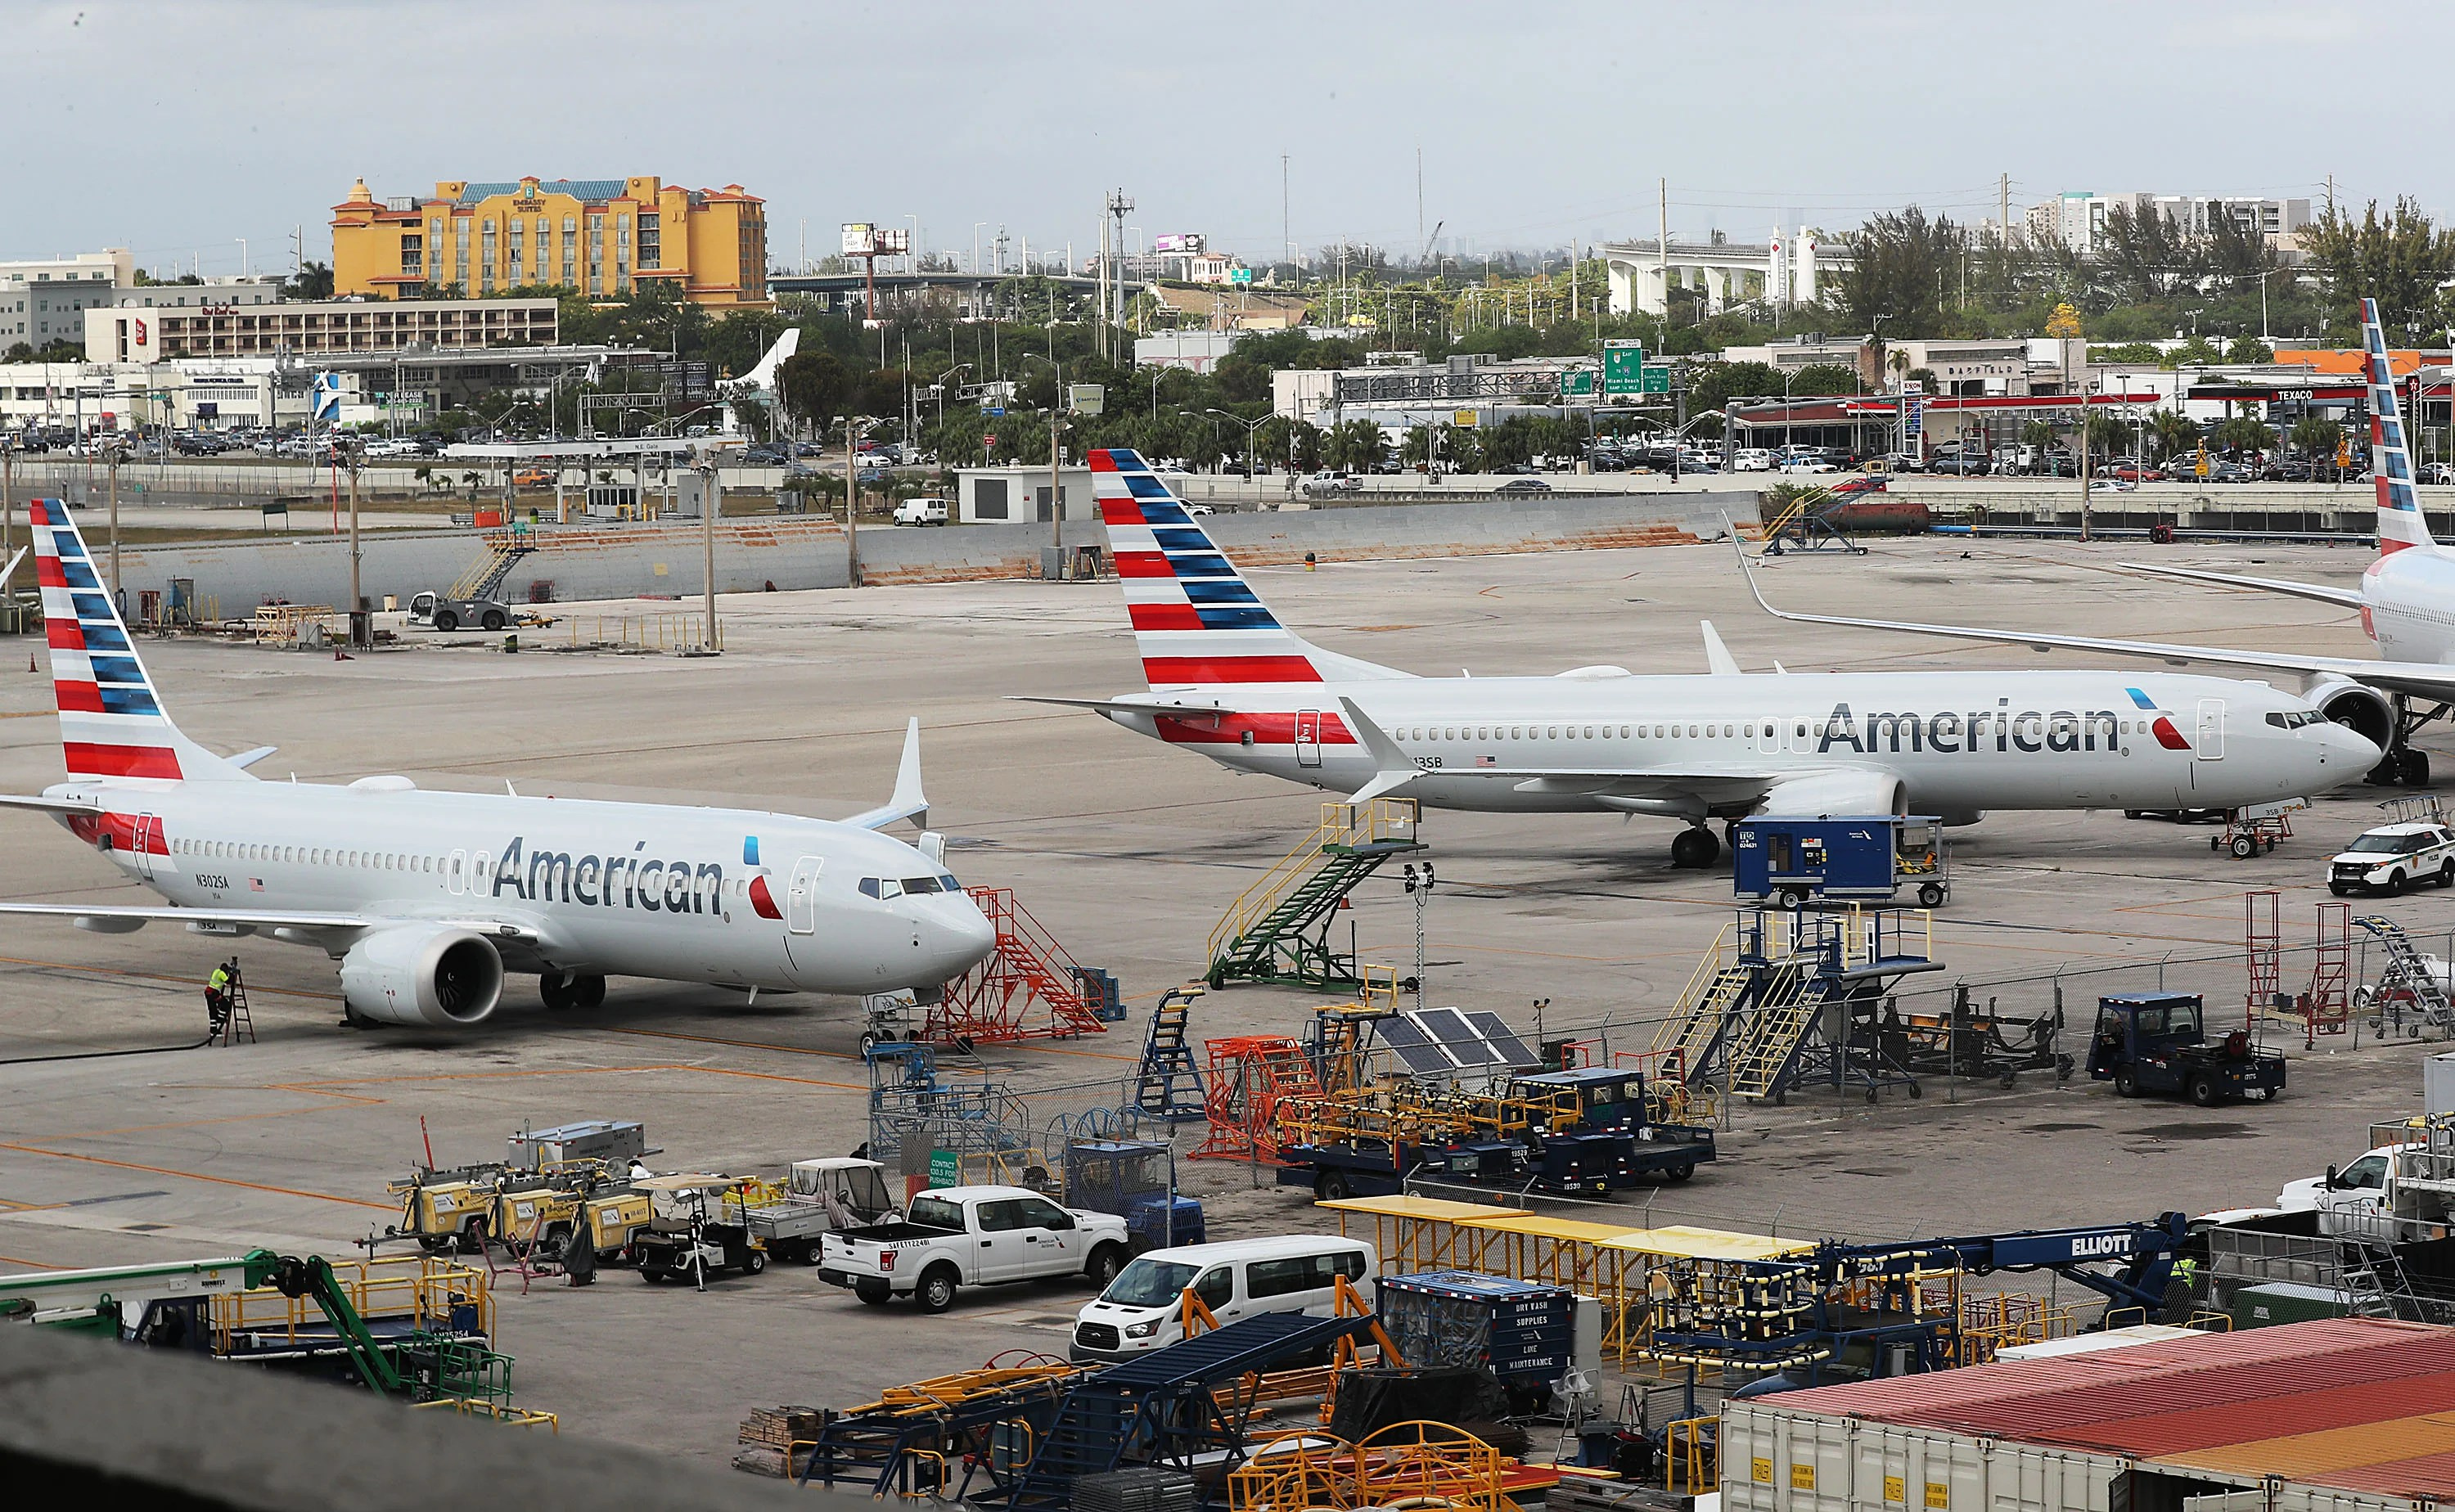 American Airlines Mechanic Charged With Sabotaging Aircraft